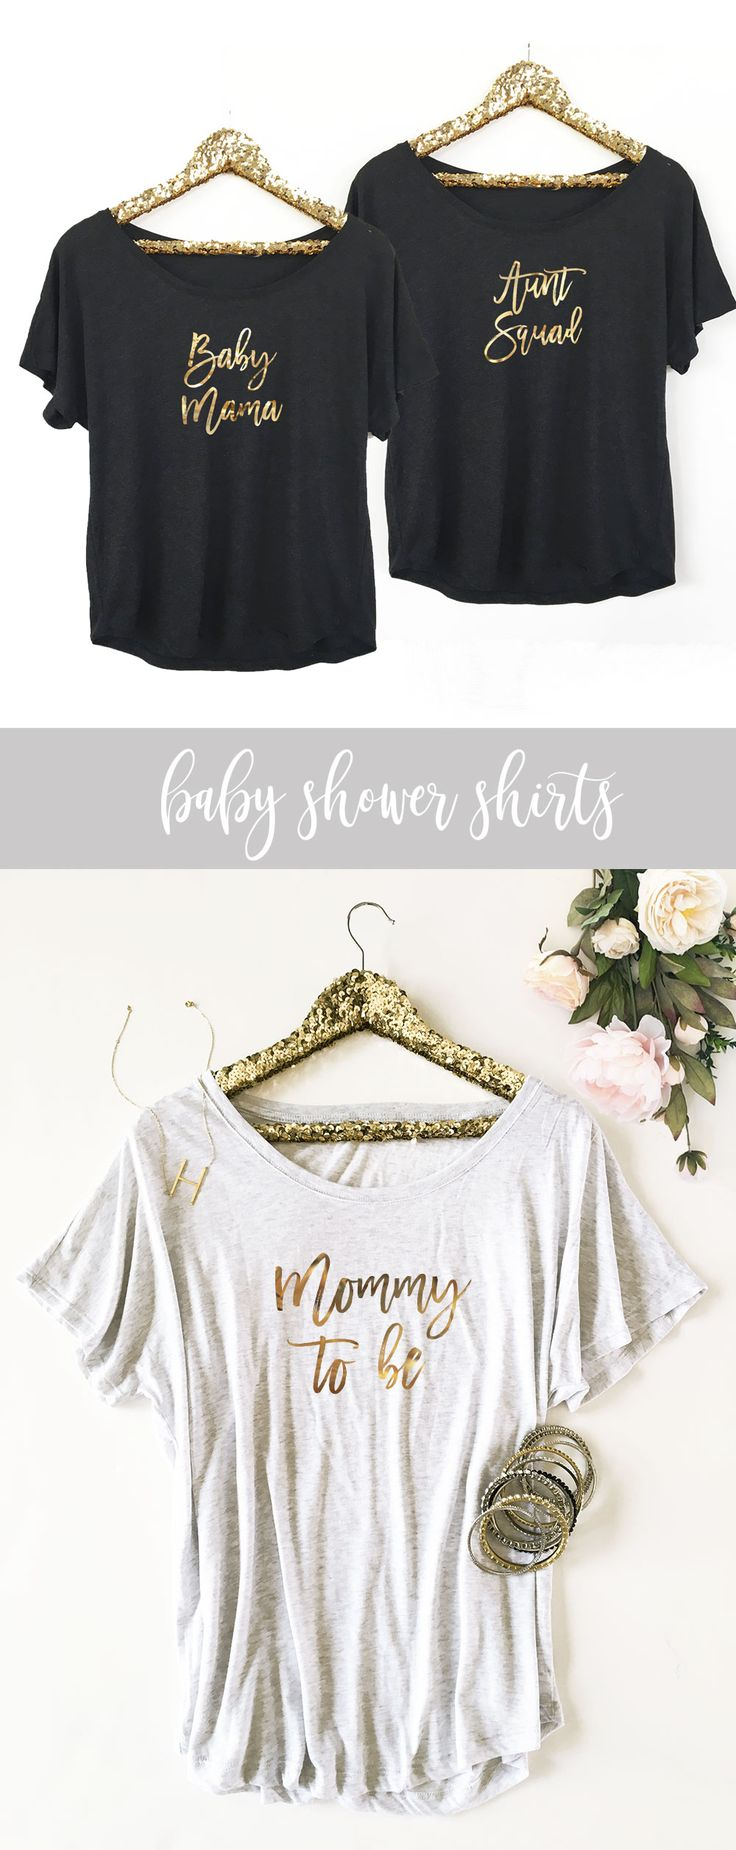 Baby Shower Ideas | Pregnancy Shirt | Maternity Shirt | Mommy to Be Shirt | Baby Mama Shirt | Aunt Squad Shirt